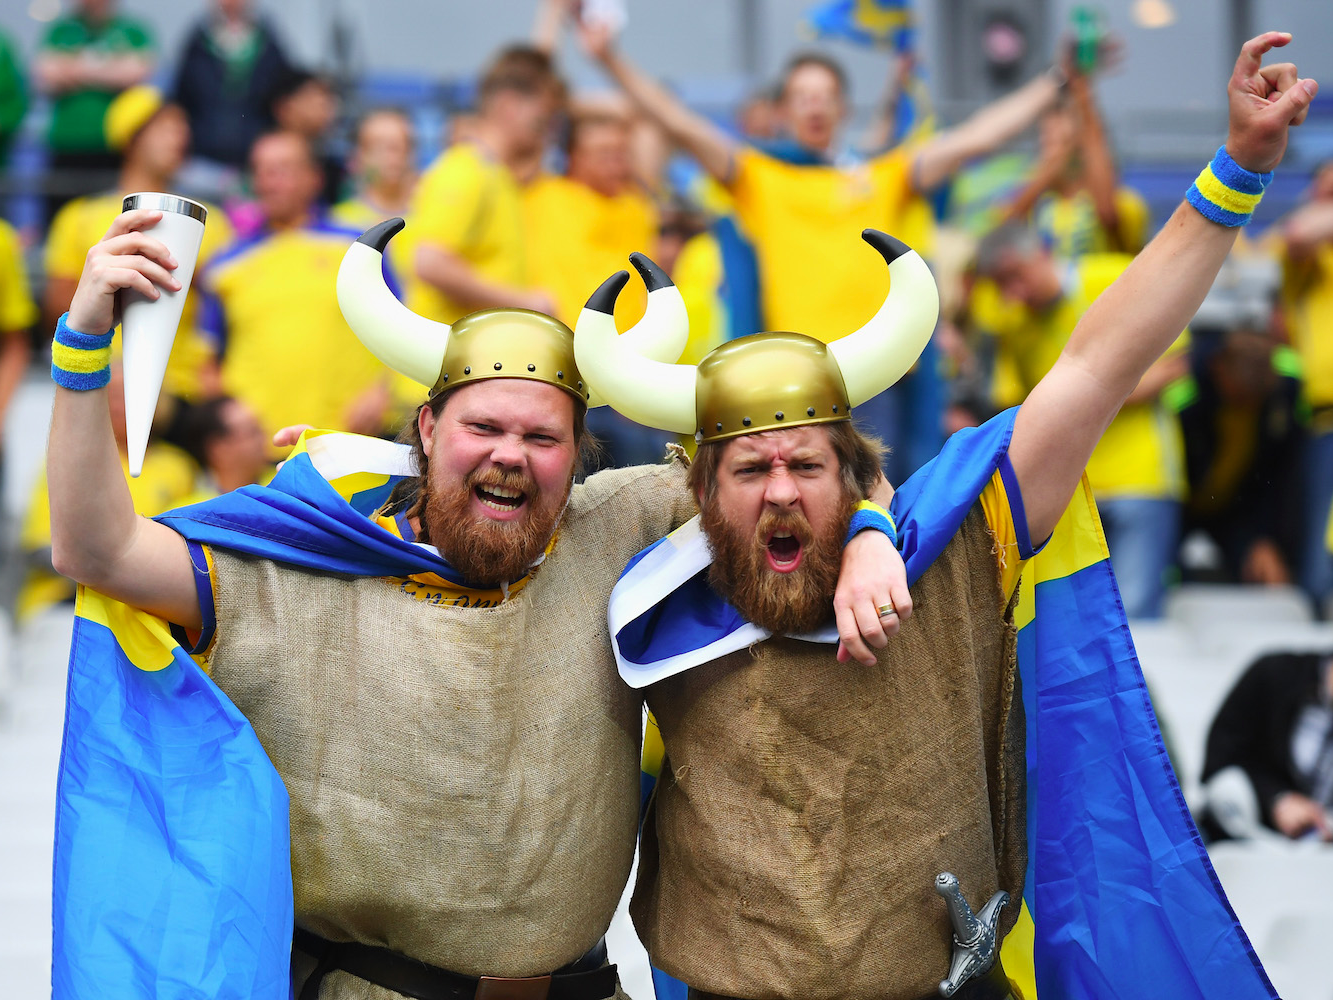 Happy Swedes (Sweden supporters enjoy the atmosphere prior to the UEFA EURO 2016 Group E match between Republic of Ireland and Sweden at Stade de France on June 13, 2016 in Paris, France. Matthias Hangst/Getty Images)